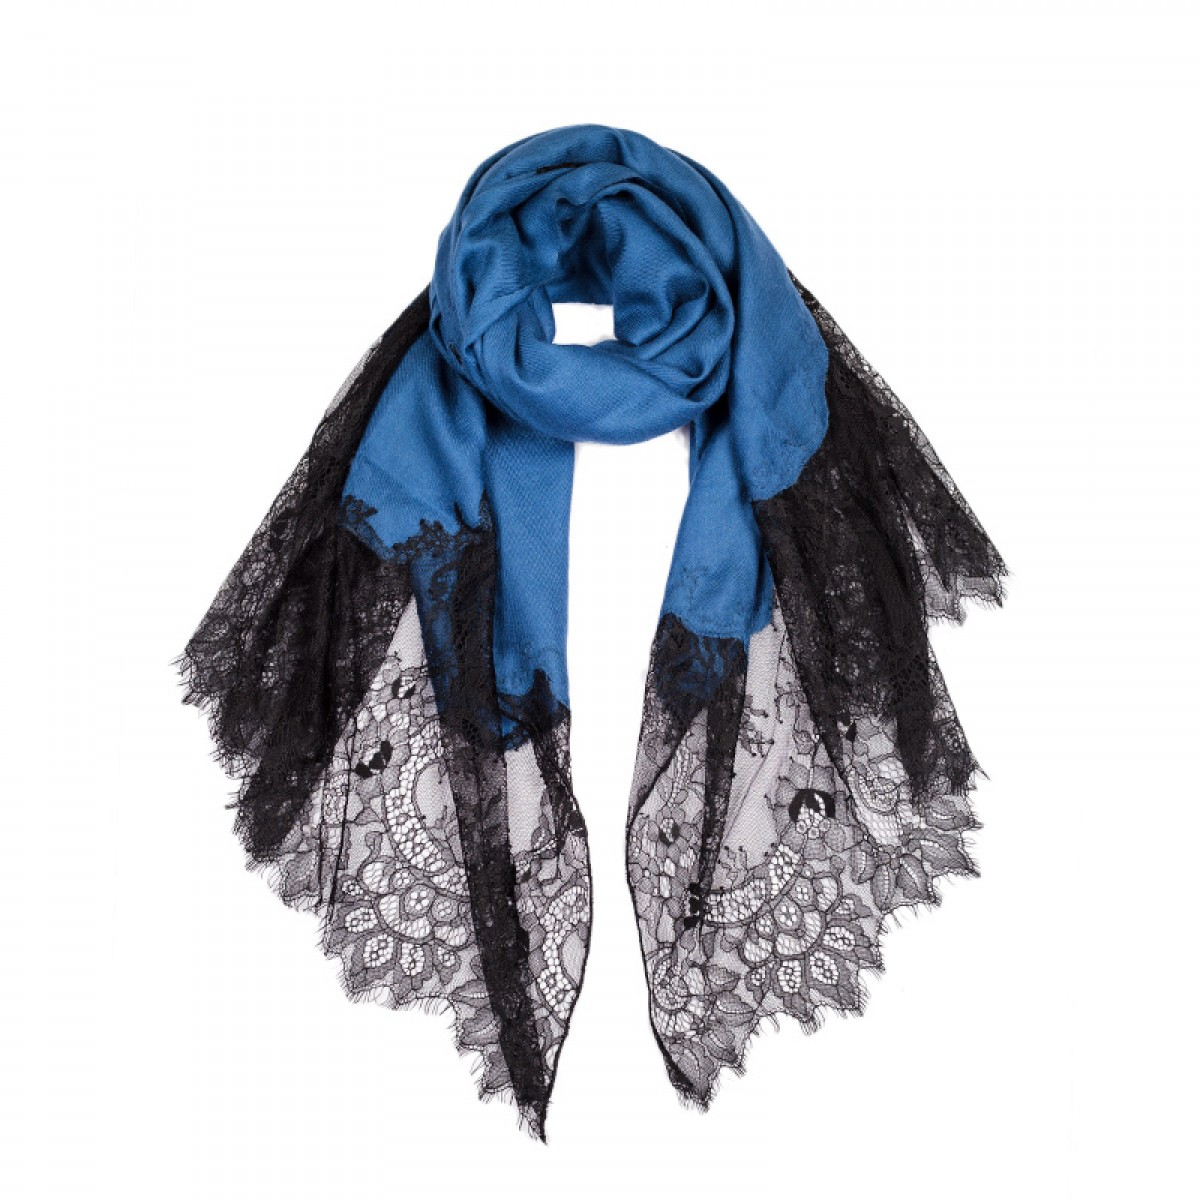 Lace Twill Pashmina Scarf Two Sides  - Midnight Blue